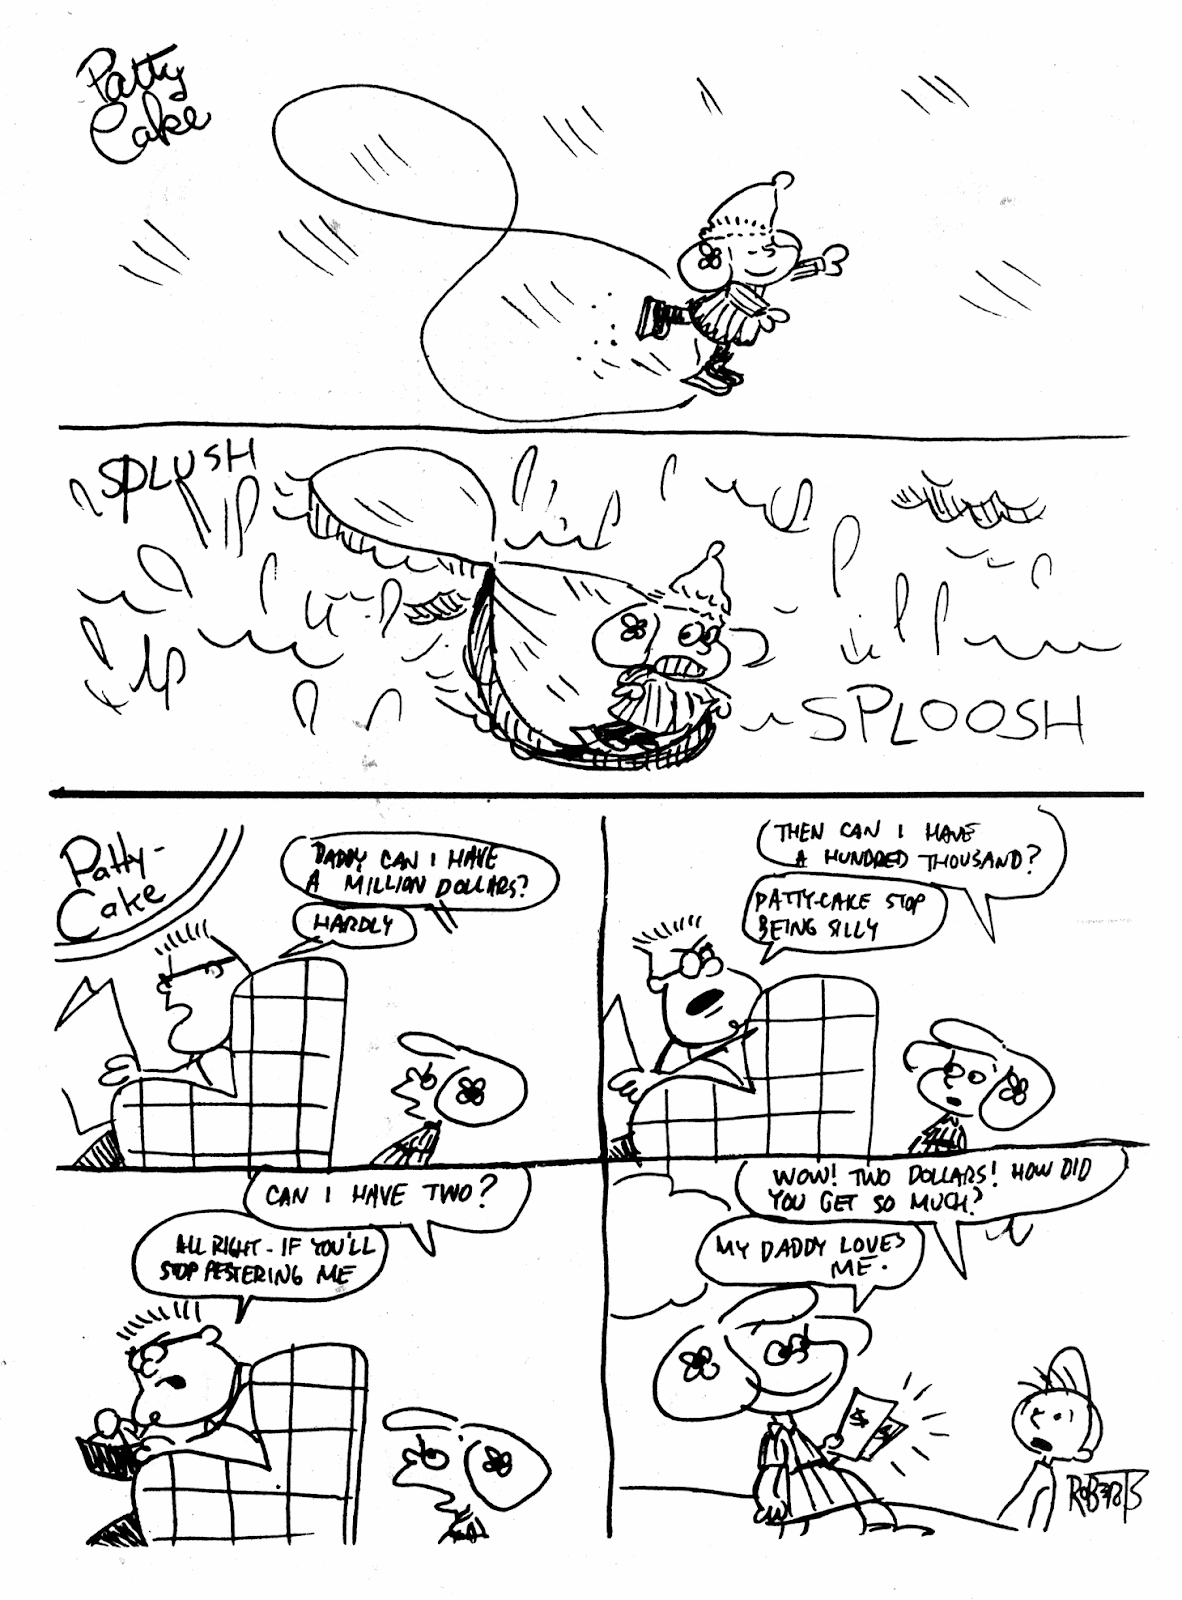 Read online Patty Cake comic -  Issue #4 - 33